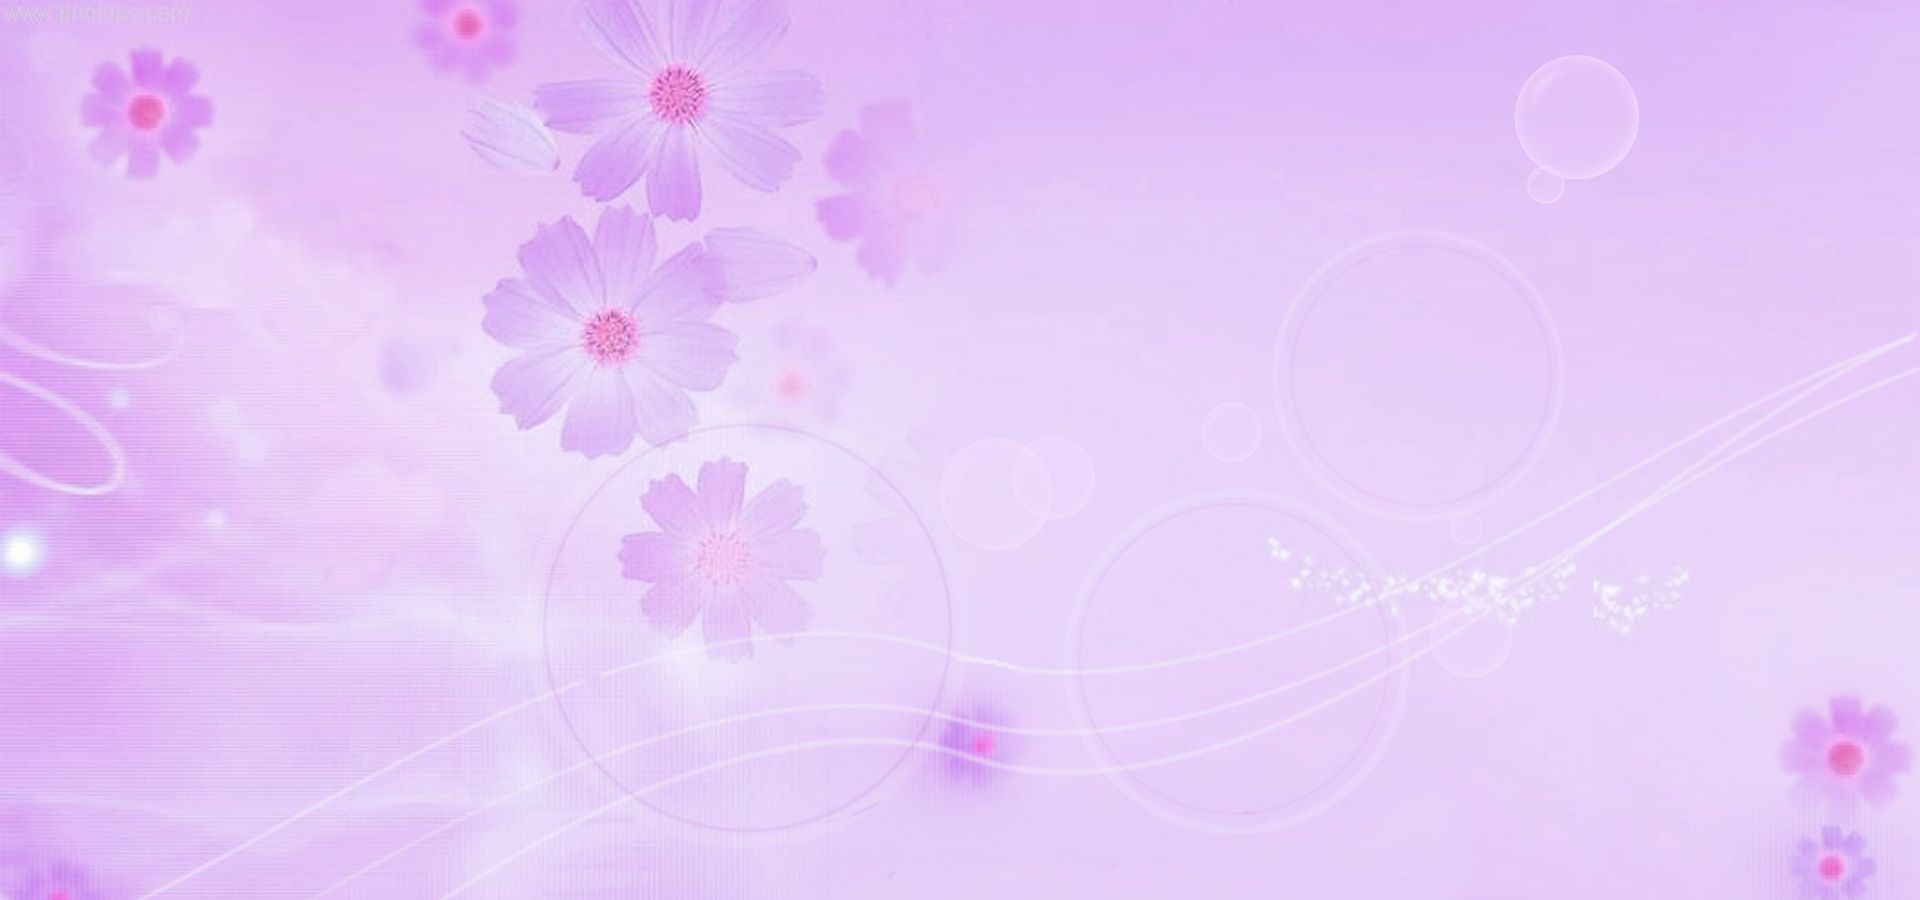 وردي زهري نمط زهرة الخلفية Purple Flower Background Flower Backgrounds Purple Flowers